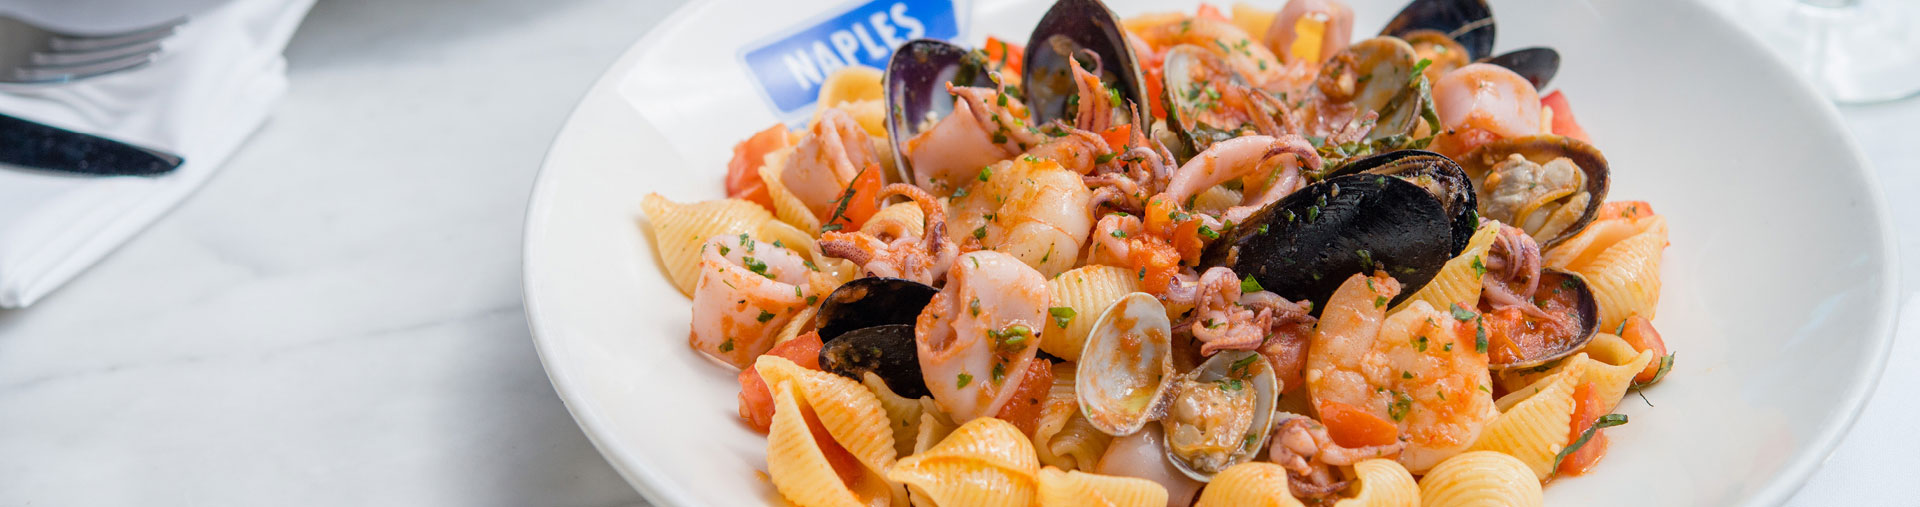 Seafood and pasta entree served at in Anaheim, CA at Naples Ristorante E Bar